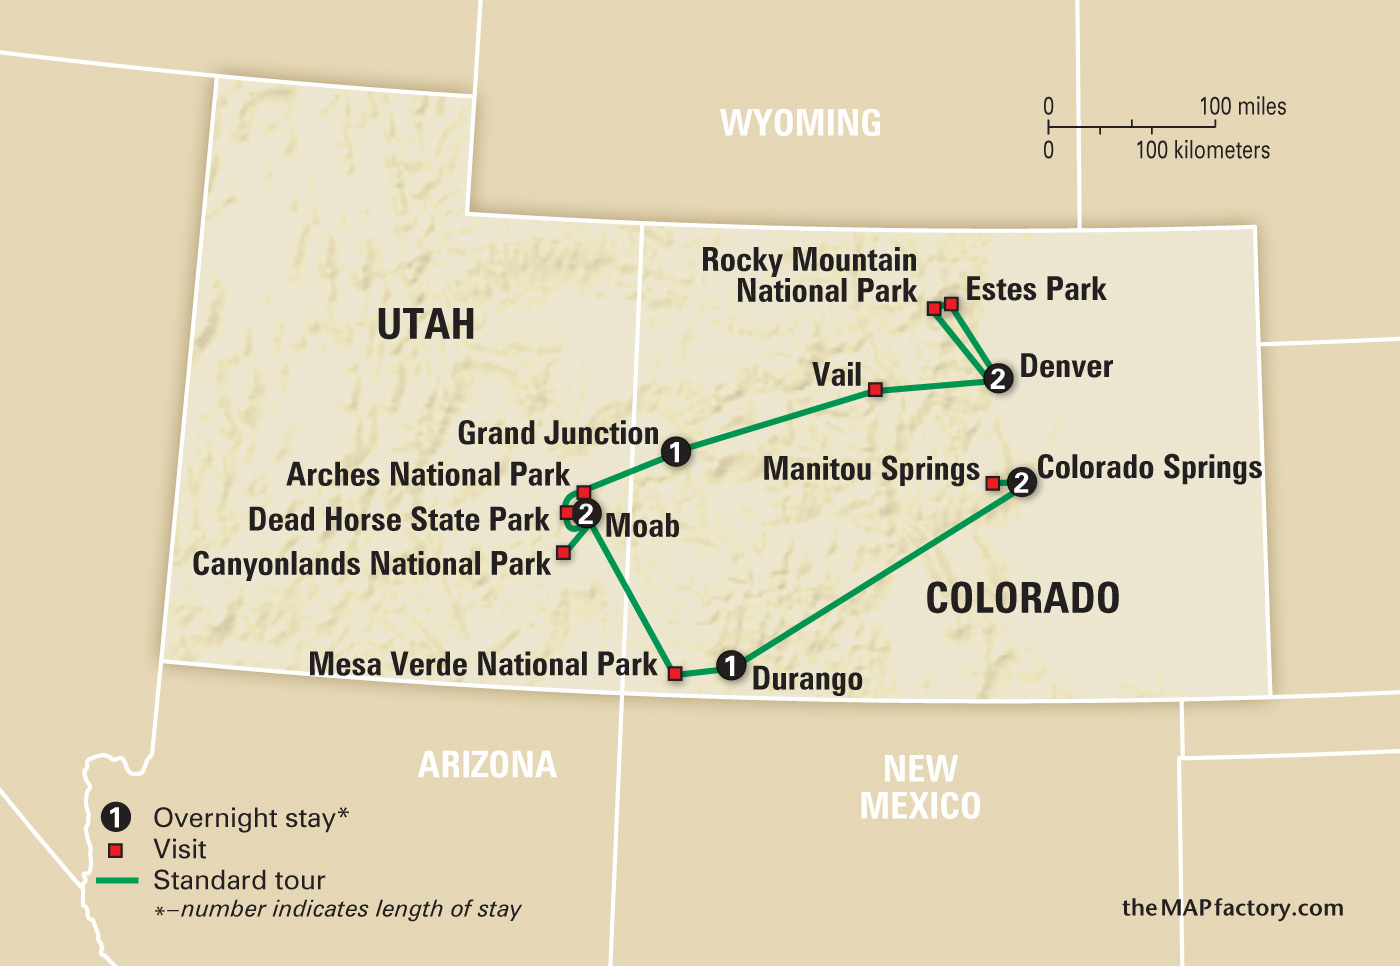 estes park jewish singles Couples, singles, and young families will enjoy quite mid-week stays, and uncrowded trails in the national park, many downtown shopping, restaurants, galleries and attractions are open year around fall season: august 21 to october 15.